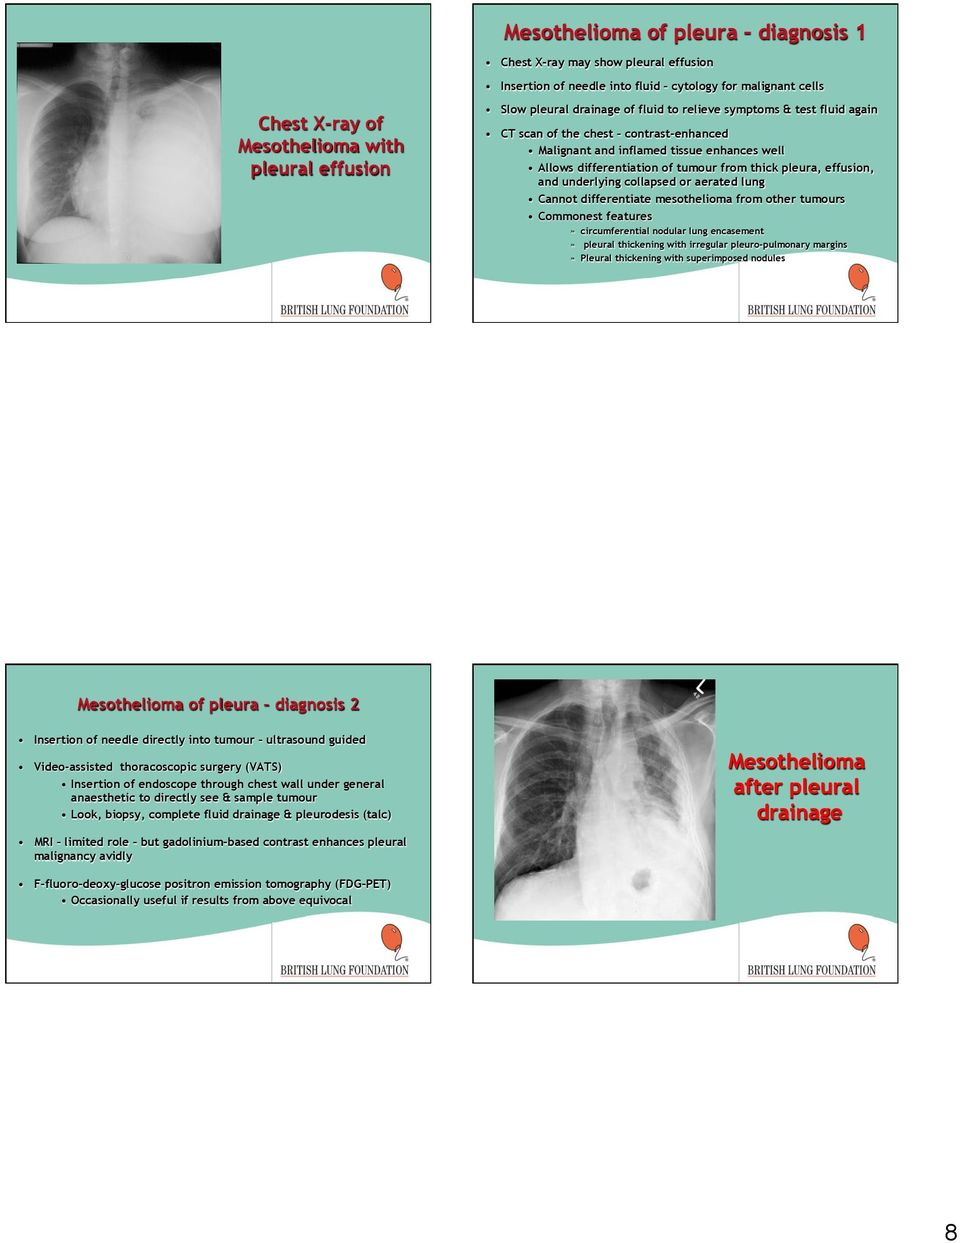 effusion, and underlying collapsed or aerated lung Cannot differentiate mesothelioma from other tumours Commonest features» circumferential nodular lung encasement» pleural thickening with irregular